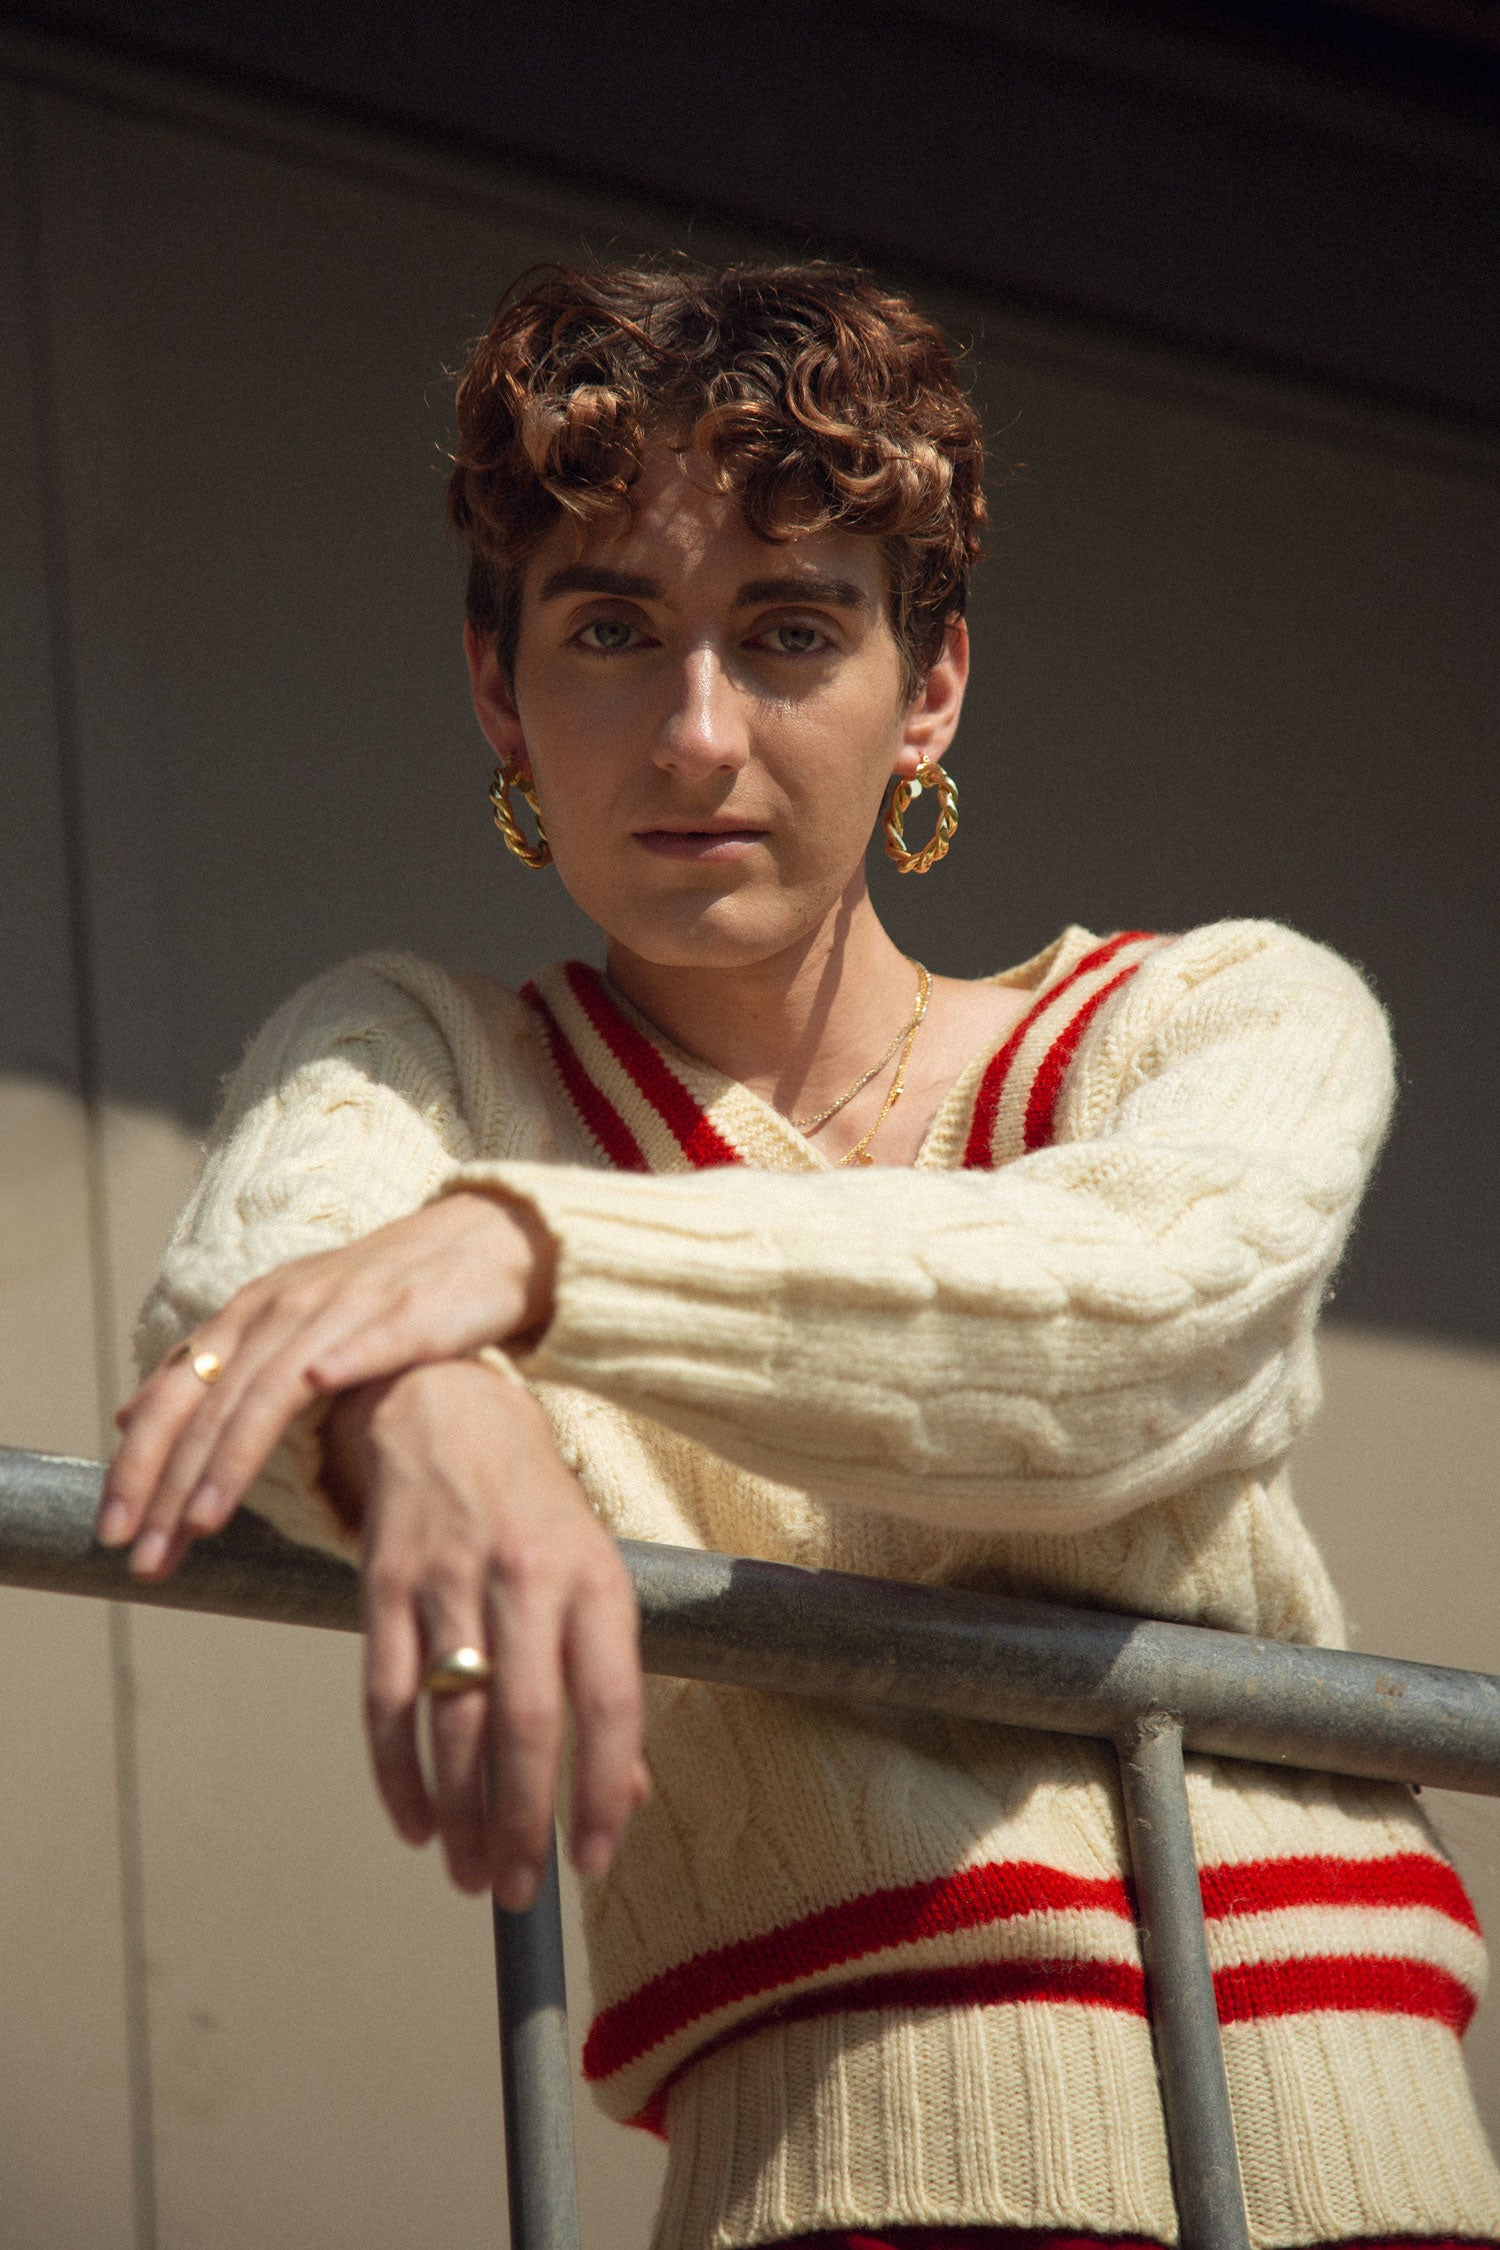 Trans femme model leaning over fence, wearing vintage 70s v neck sweater and red a-line skirt.